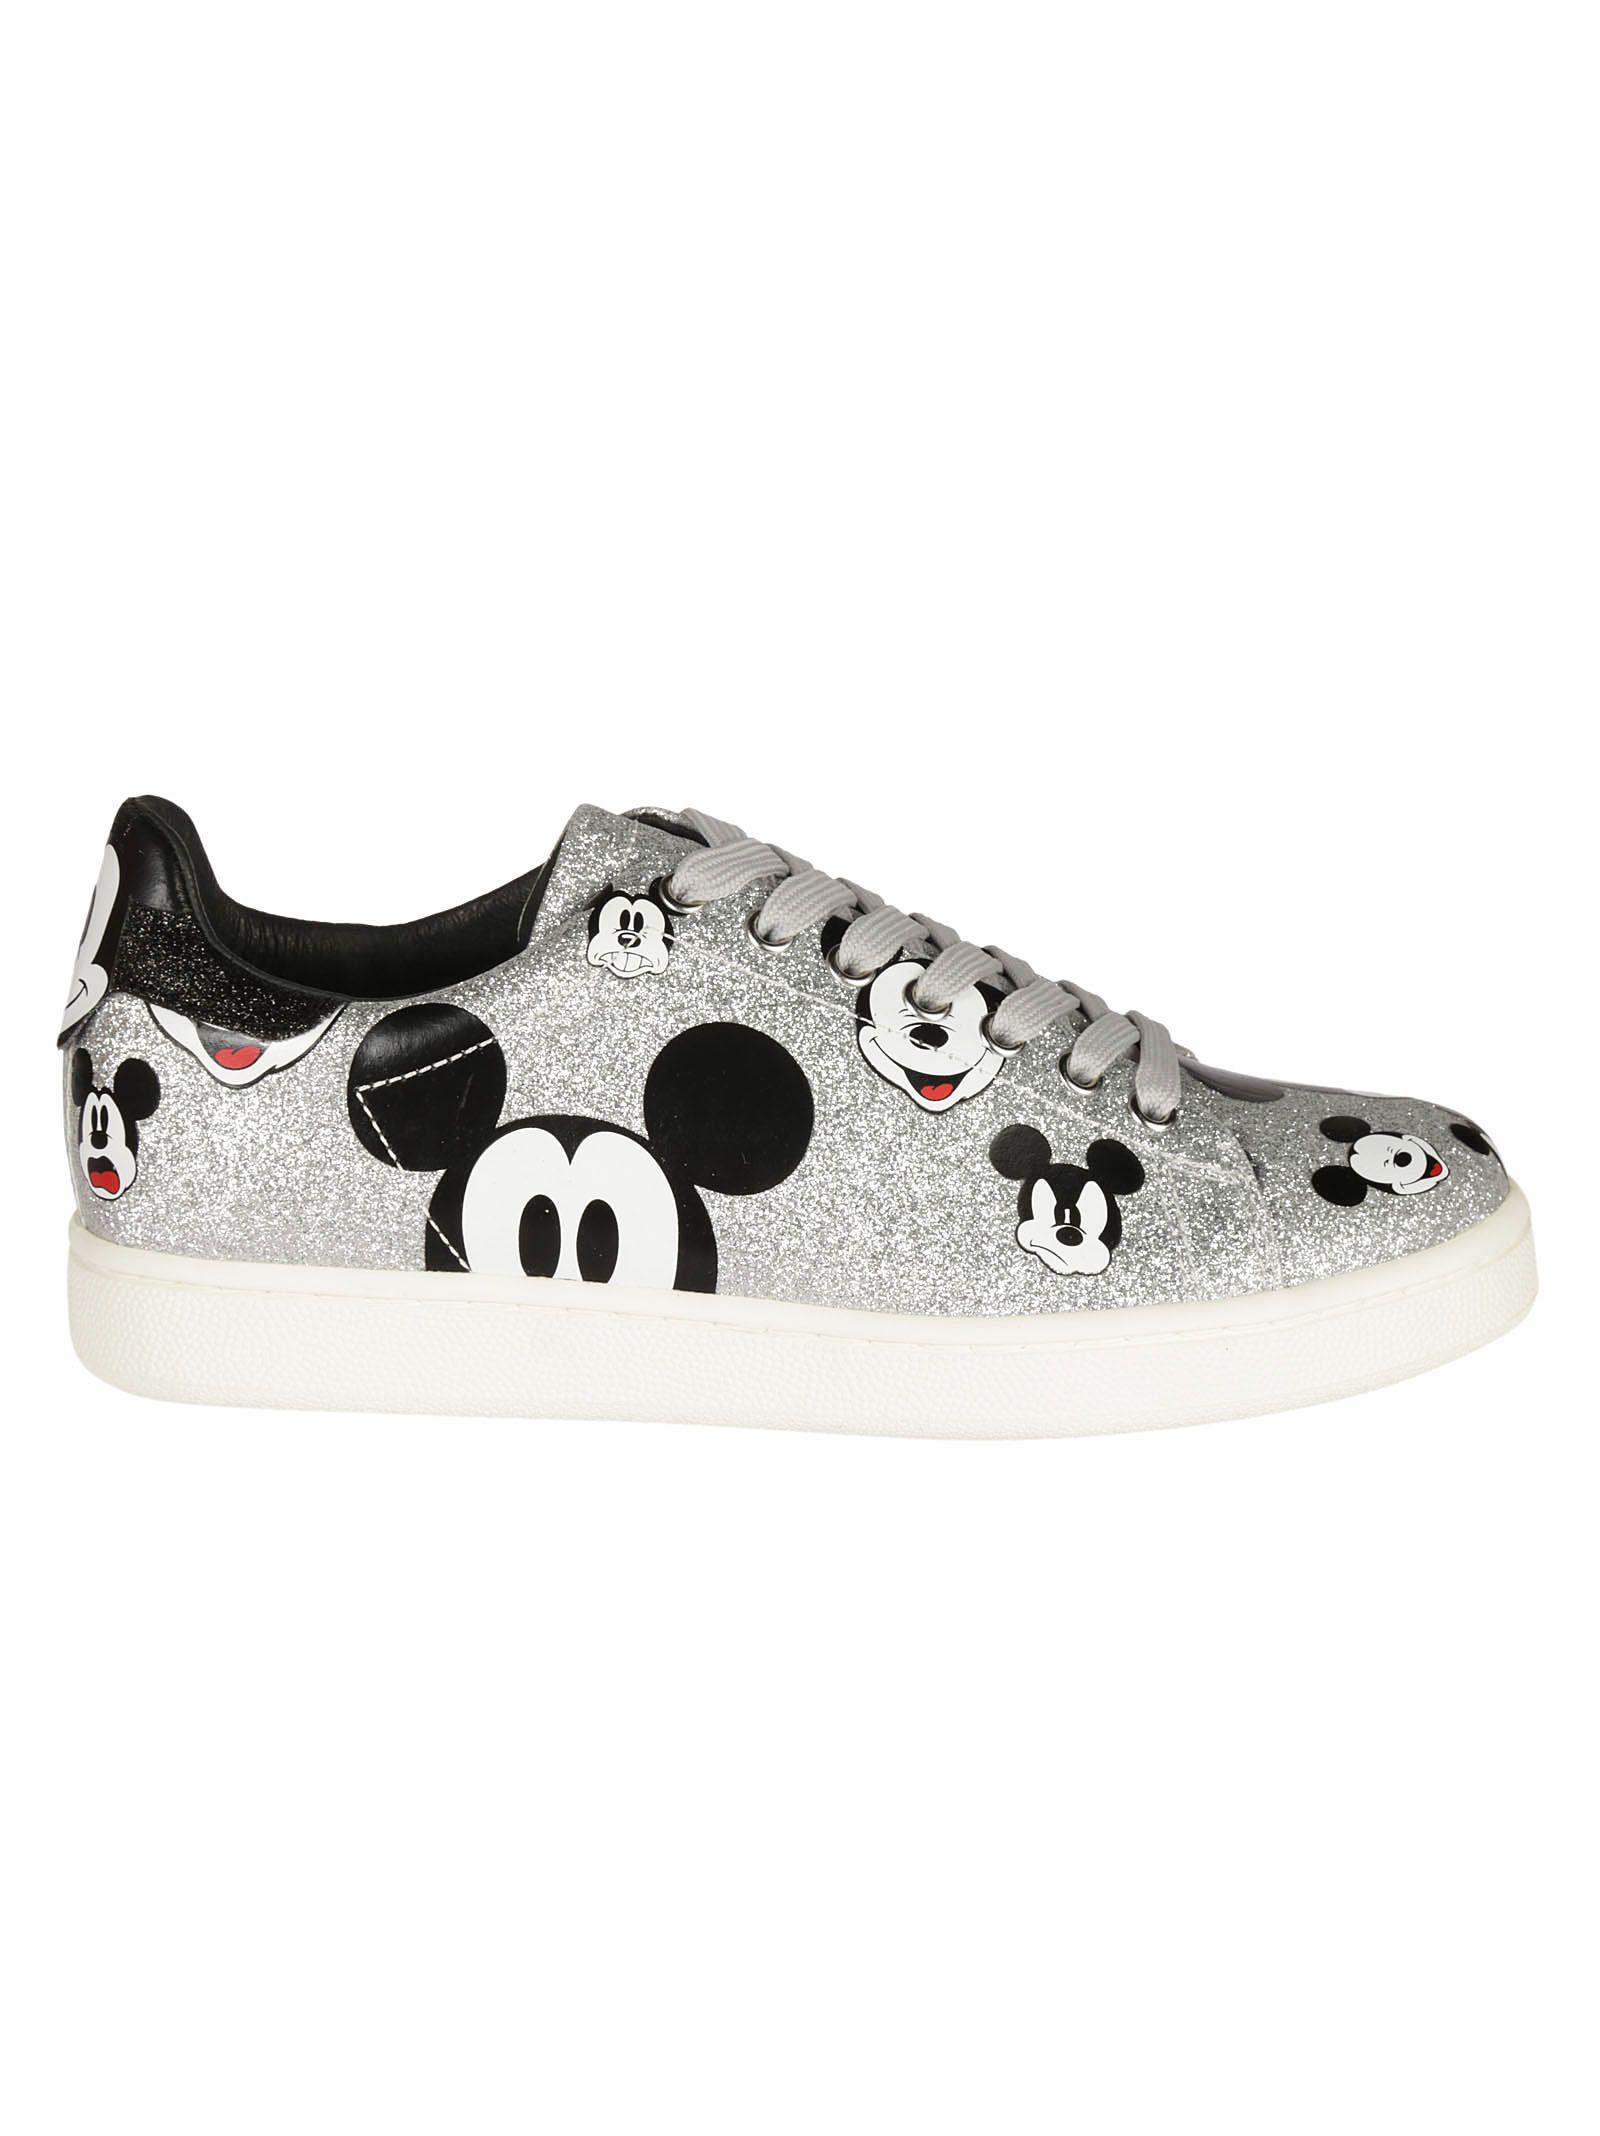 M.o.a. Mickey Mouse Sneakers In Silver